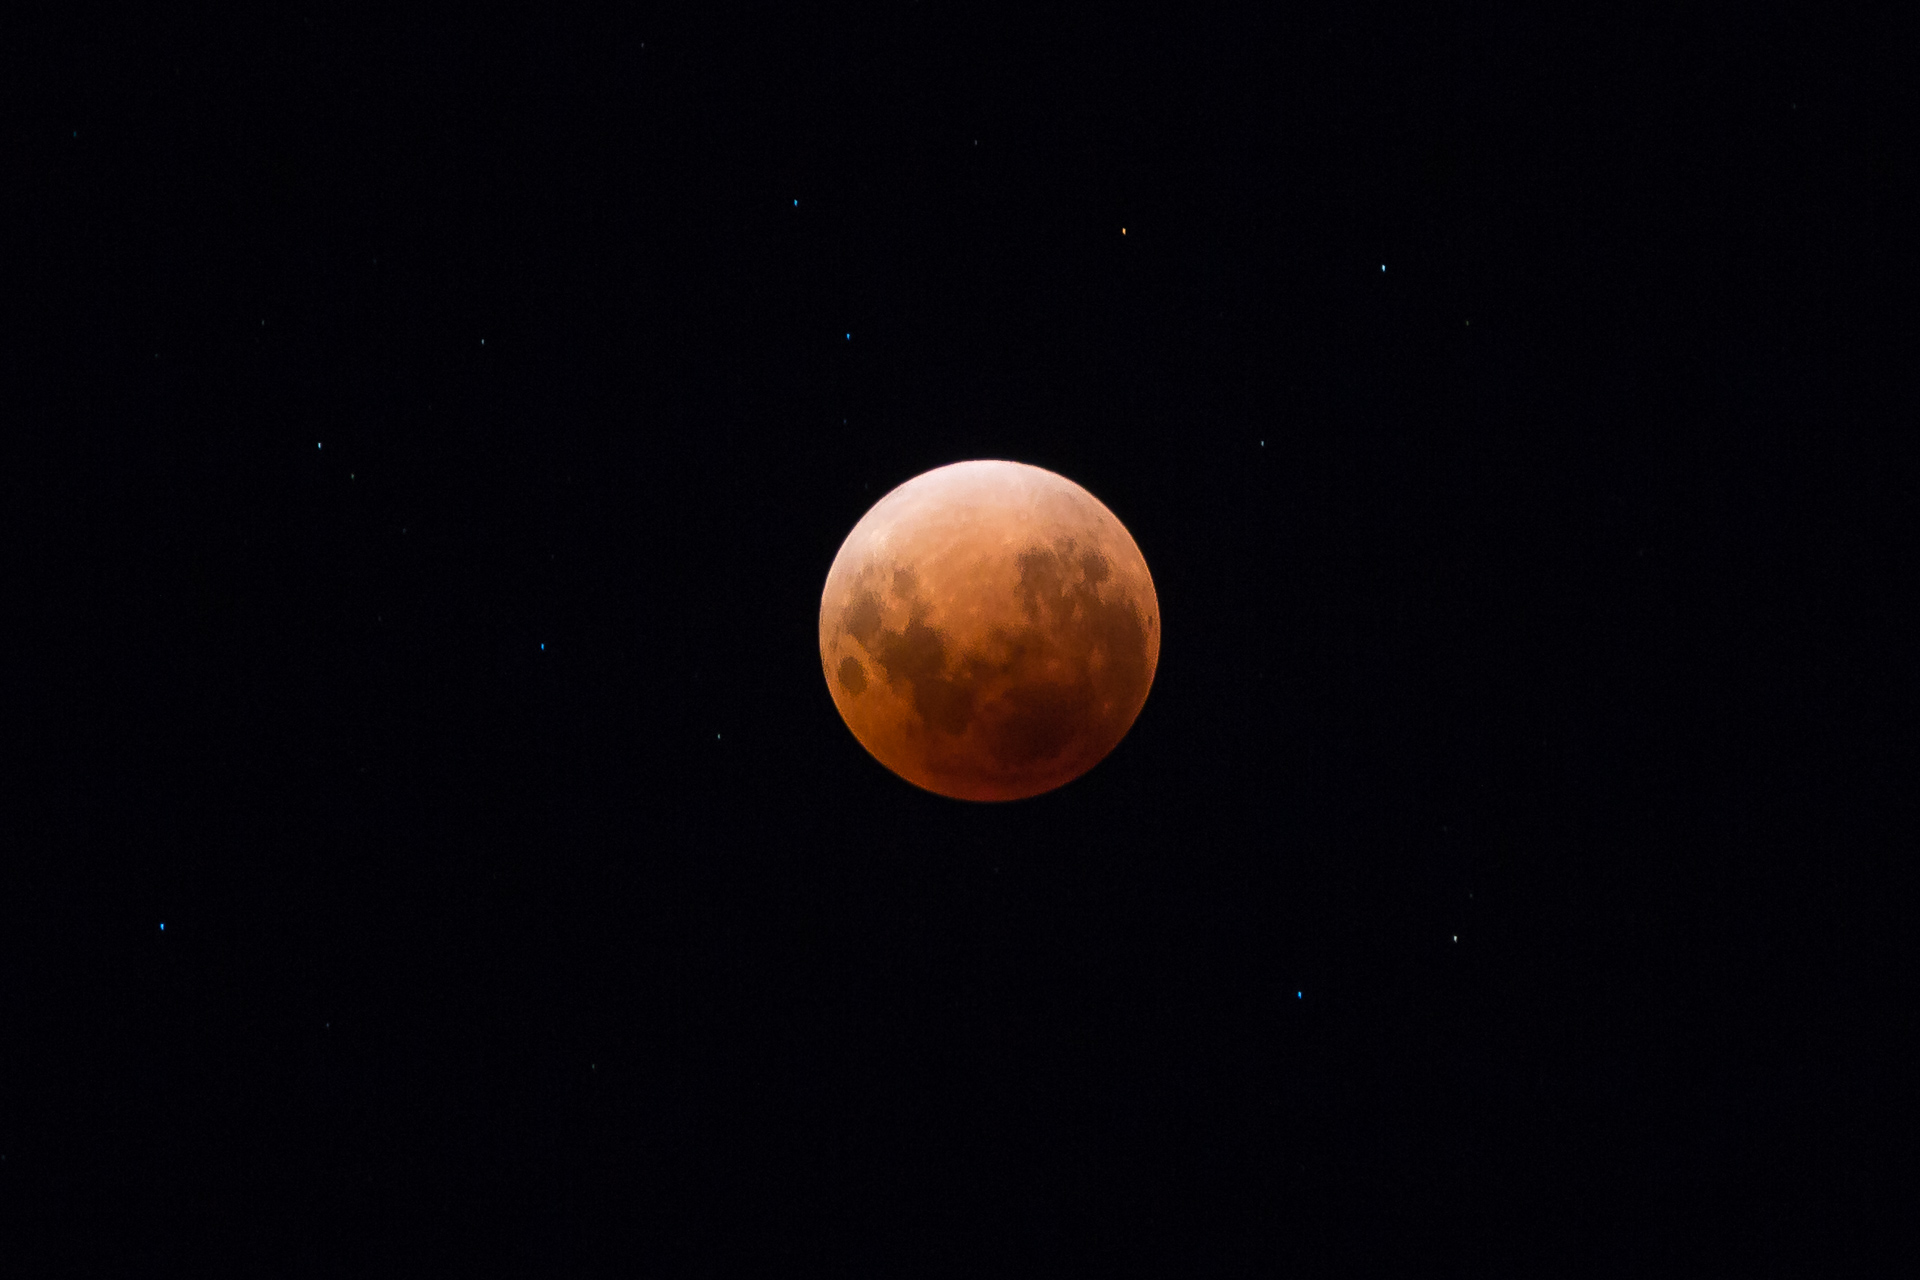 20180131-moon-eclipse-0093